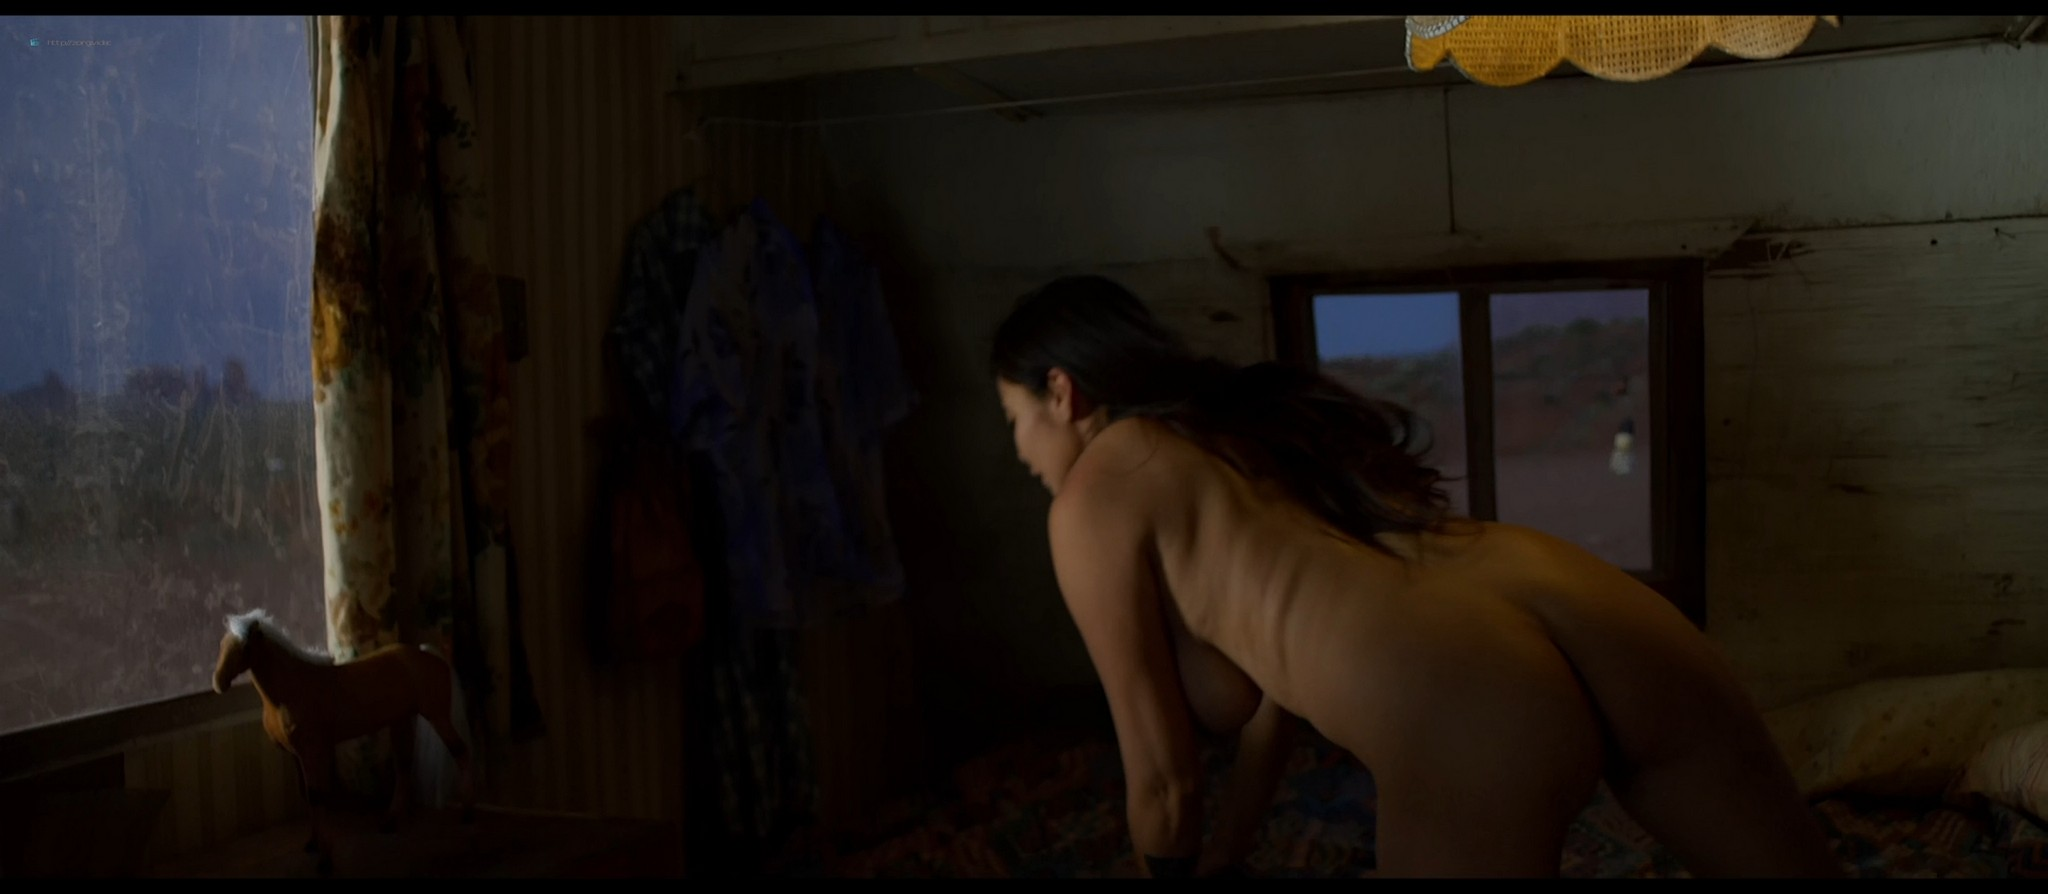 Bérénice Marlohe nude Jaime Ray Newman sexy Owee Rae butt naked - Valley of the Gods (2019) HD 1080p BluRay (16)